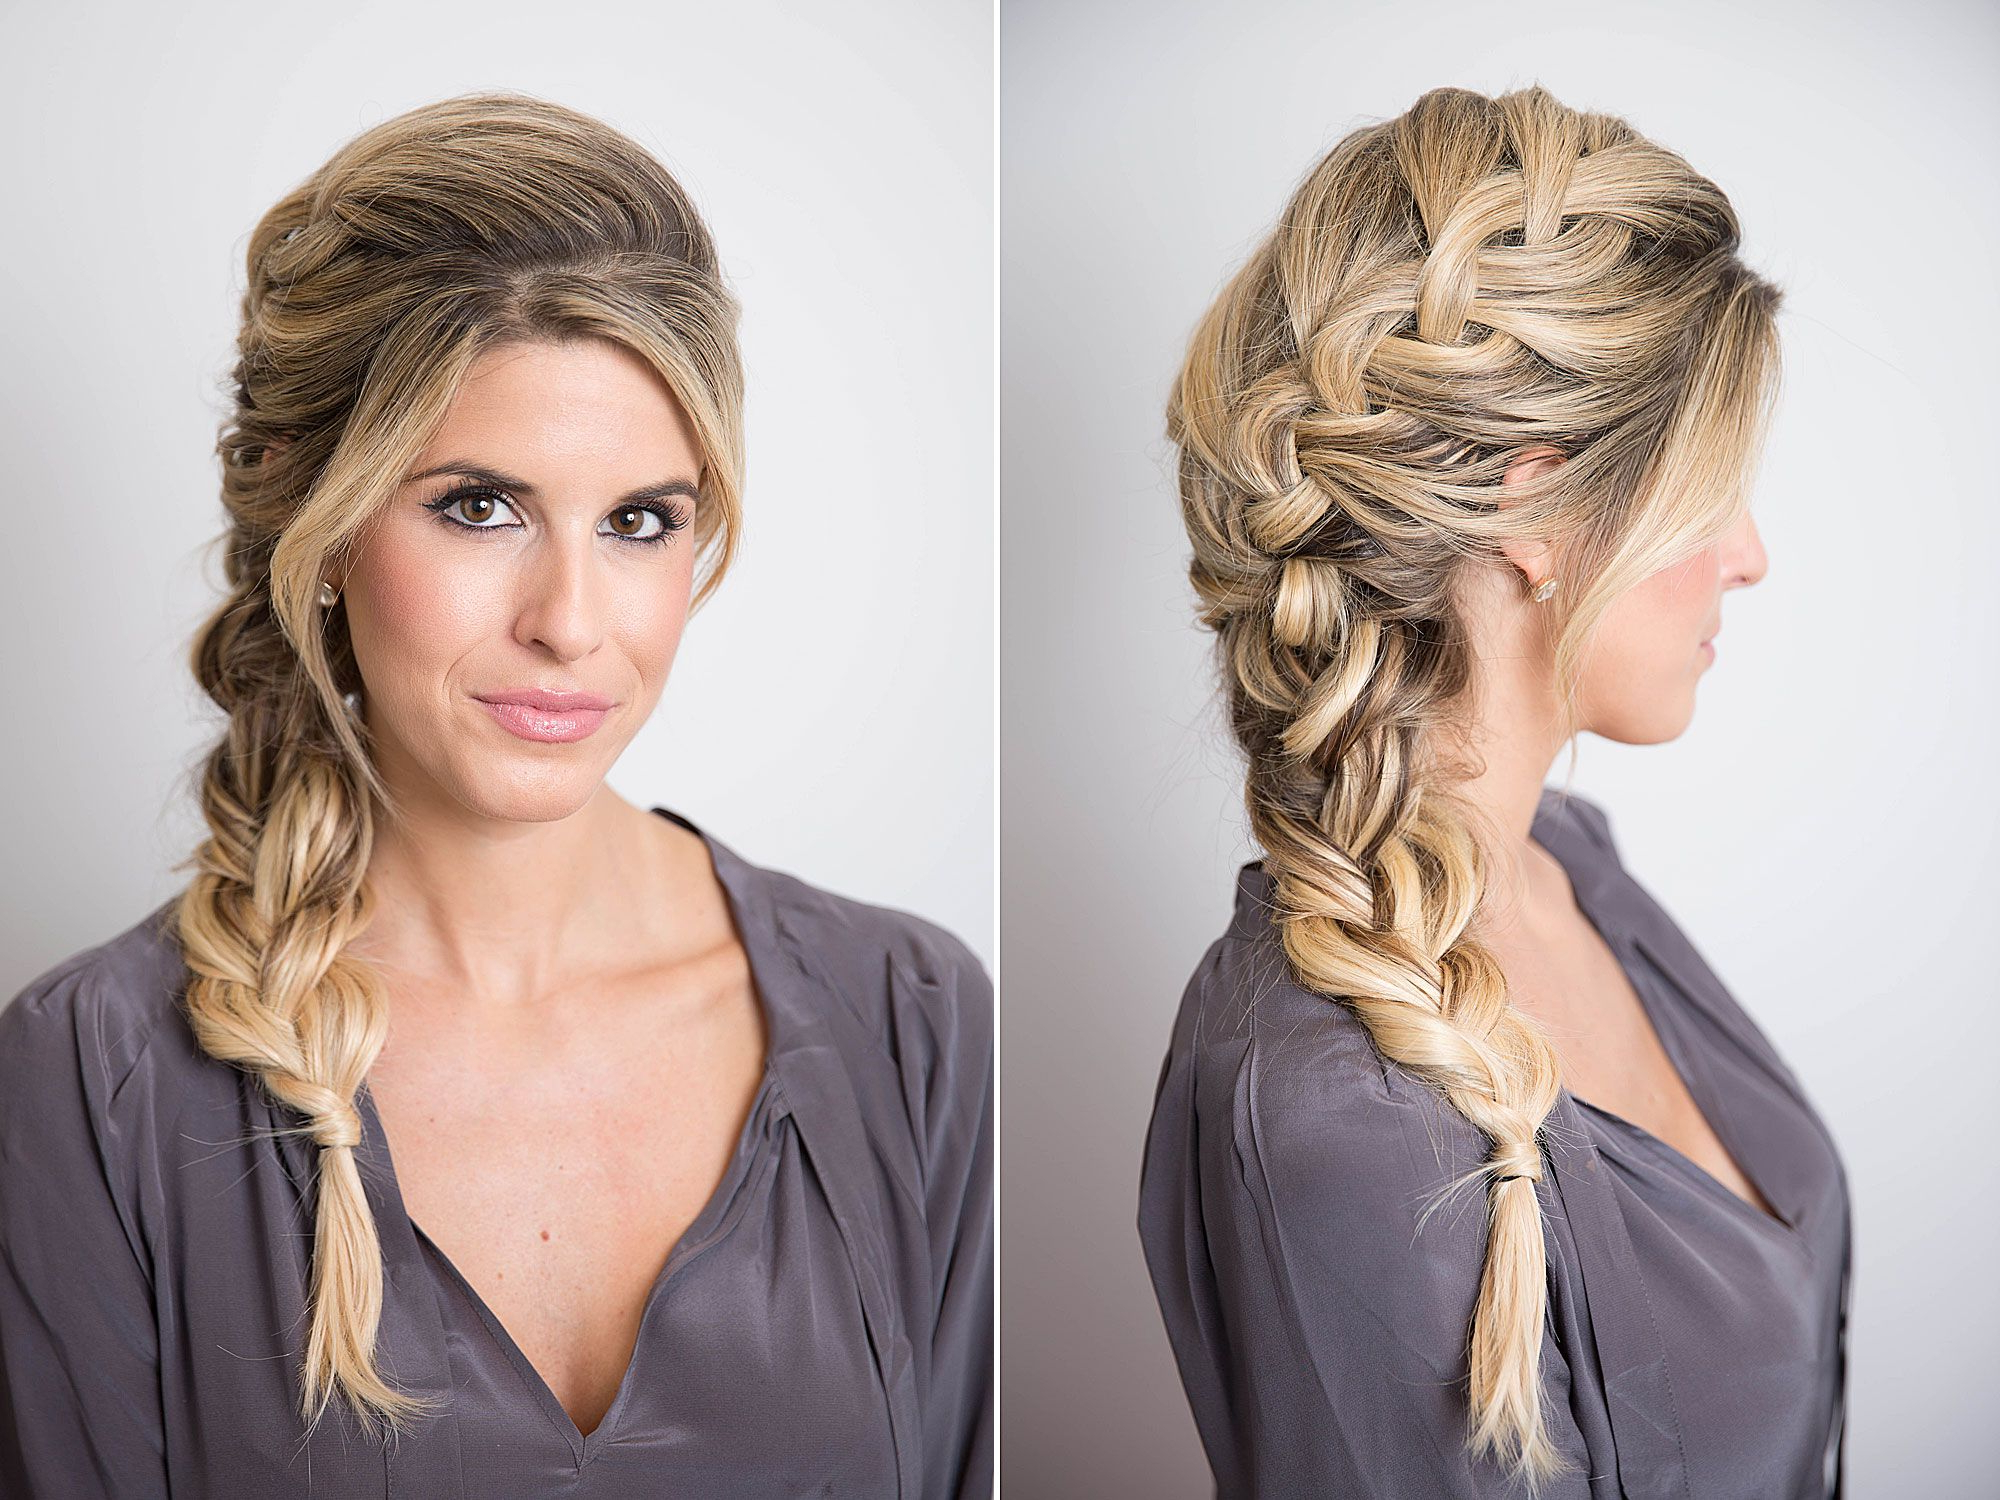 Newest Fancy Braided Hairstyles Intended For 17 Braided Hairstyles With Gifs – How To Do Every Type Of Braid (View 3 of 20)